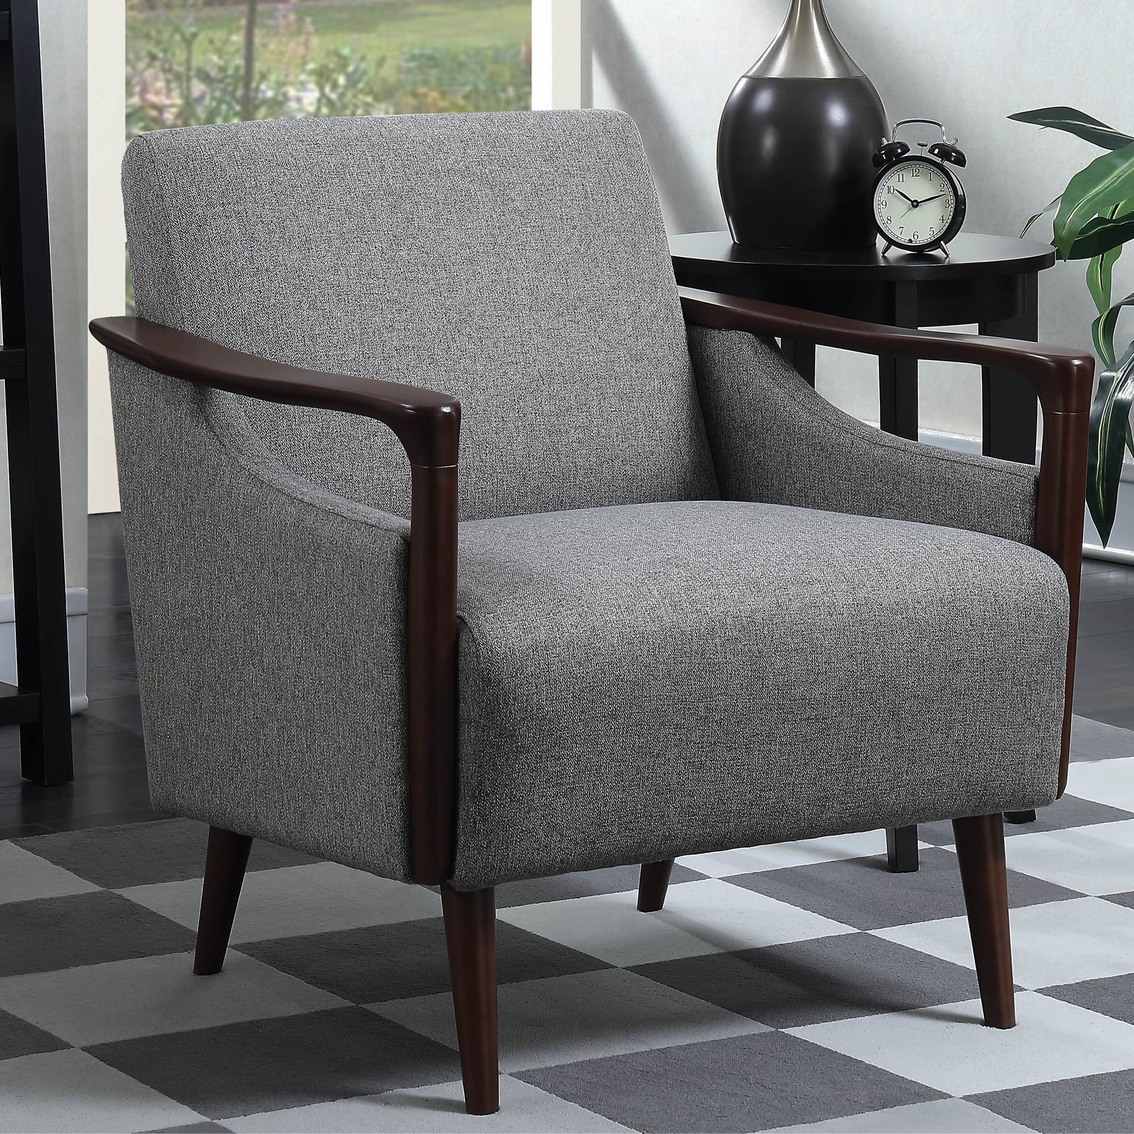 Enjoyable Scott Living Mid Century Modern Accent Chair Chairs Andrewgaddart Wooden Chair Designs For Living Room Andrewgaddartcom